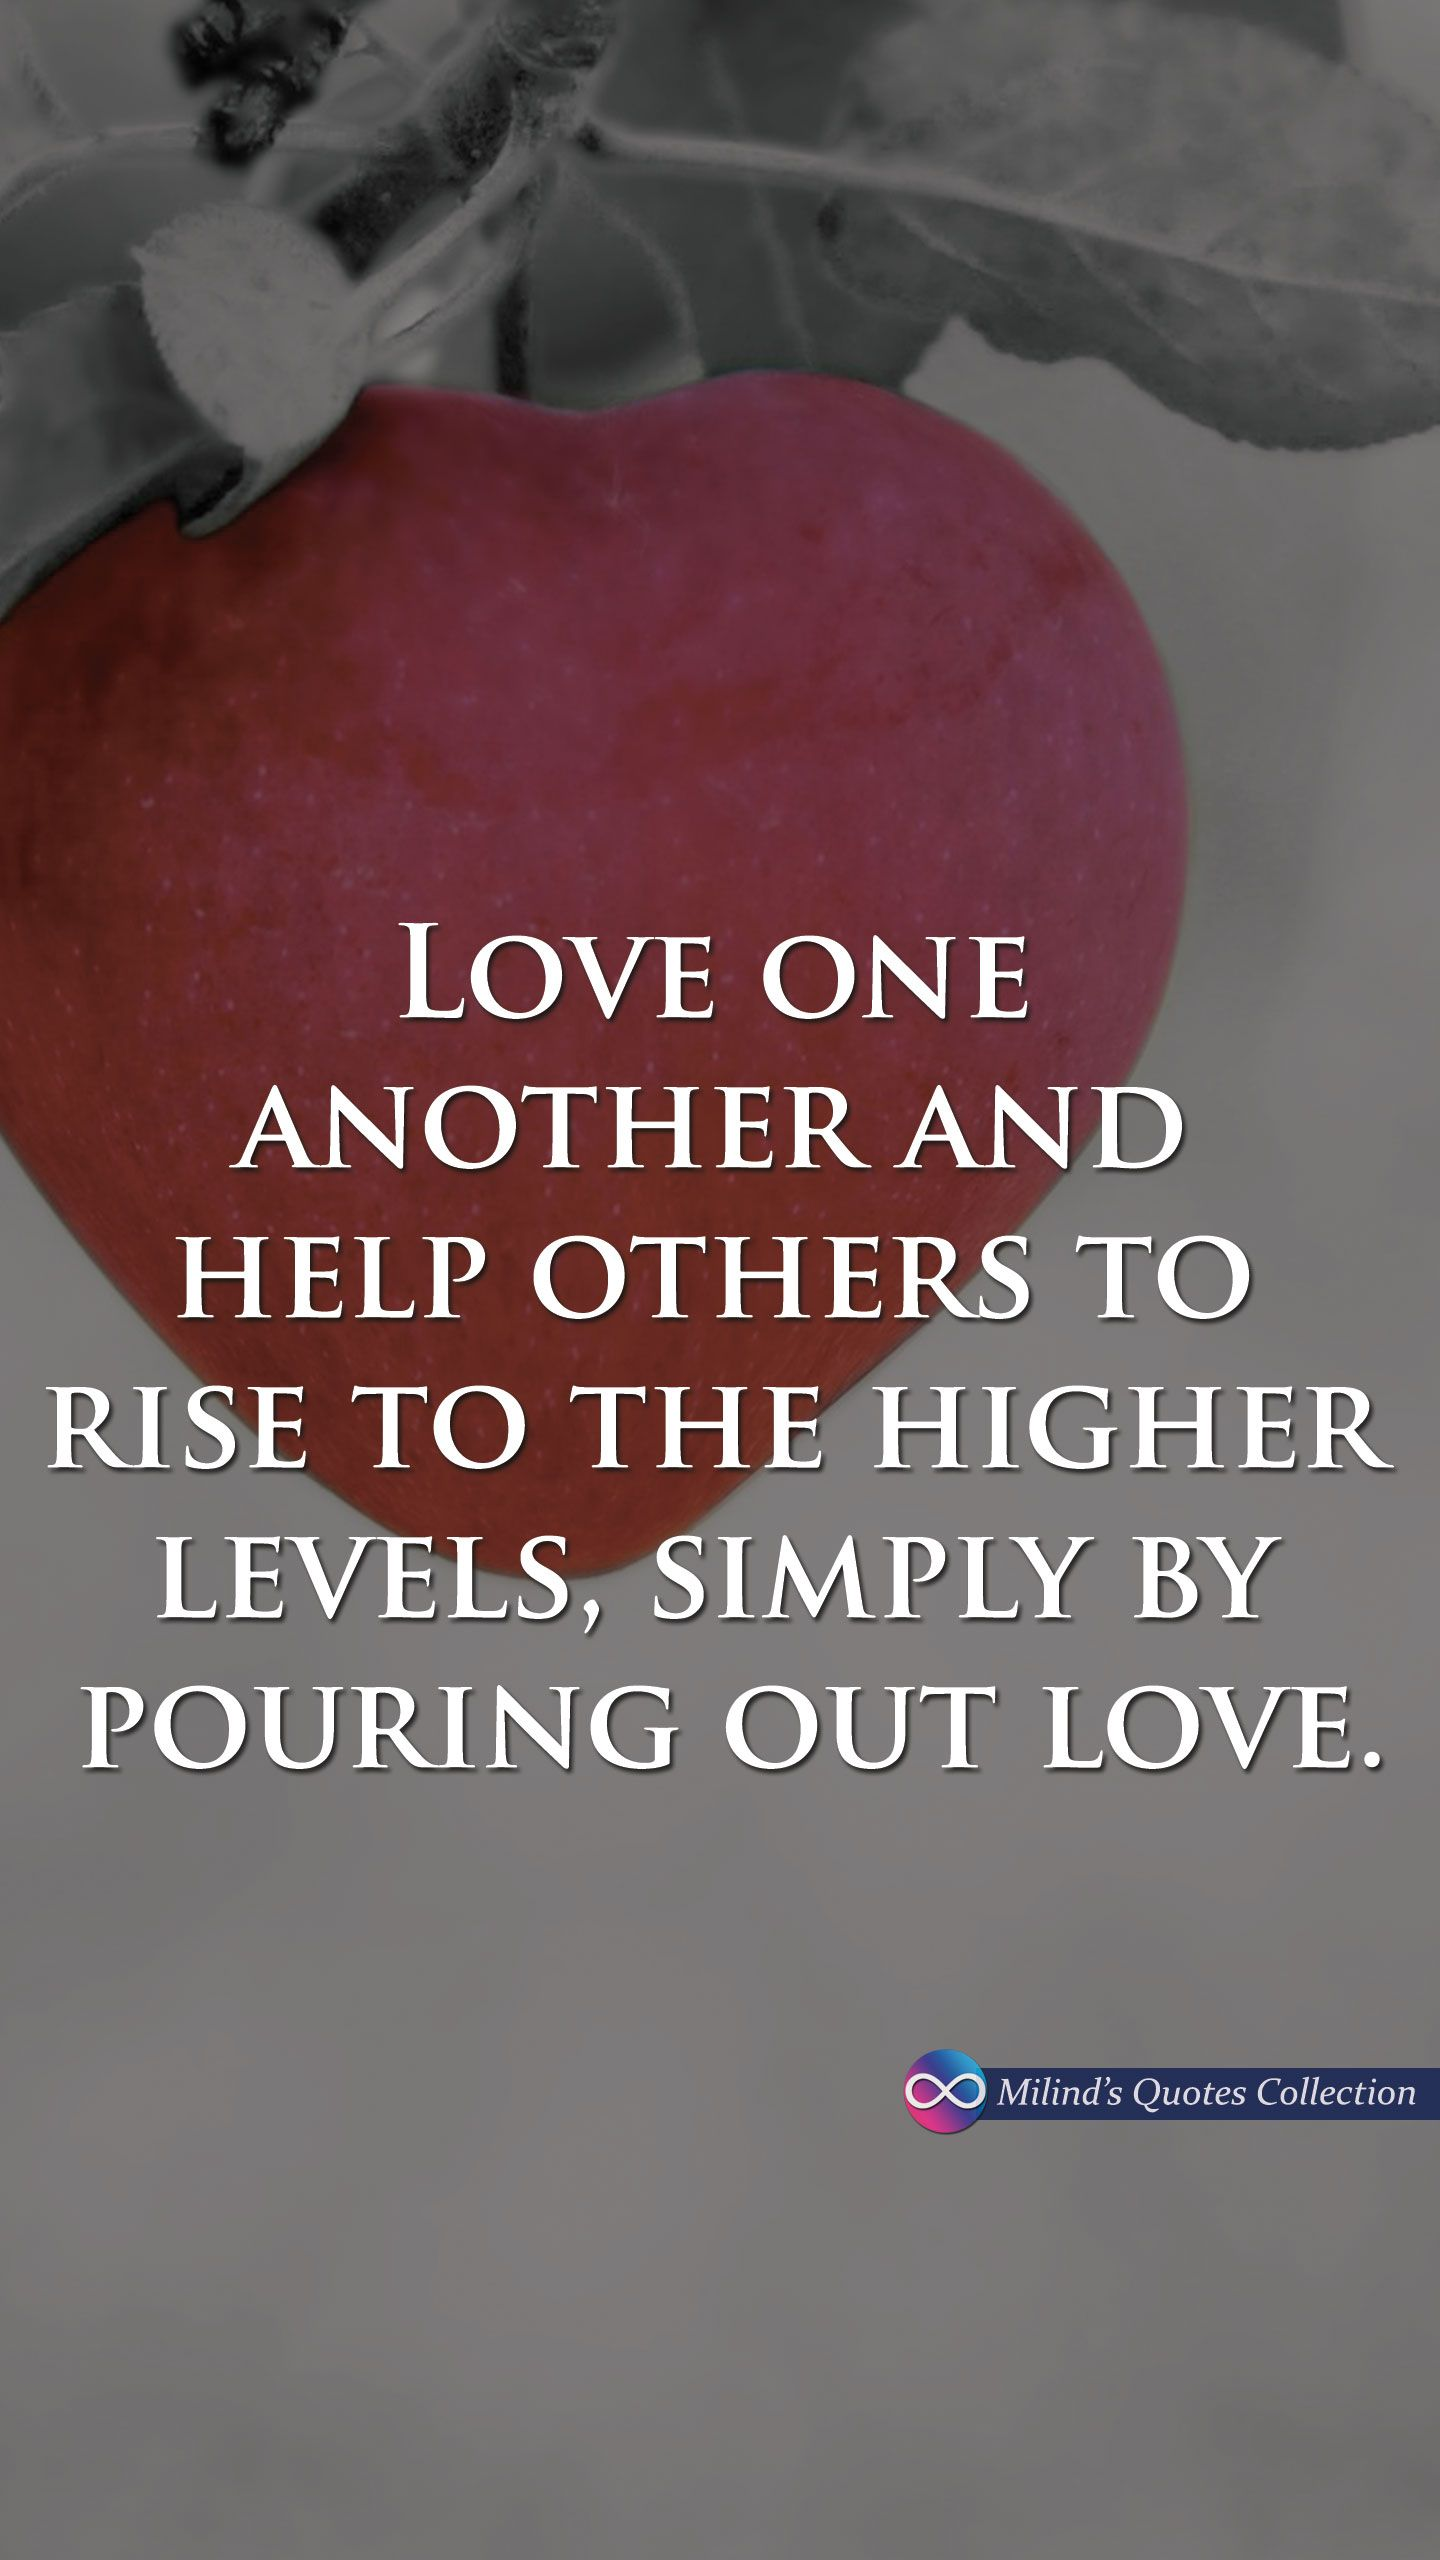 Love One Another Quotes Love One Another And Help Others To Rise To The Higher Levels